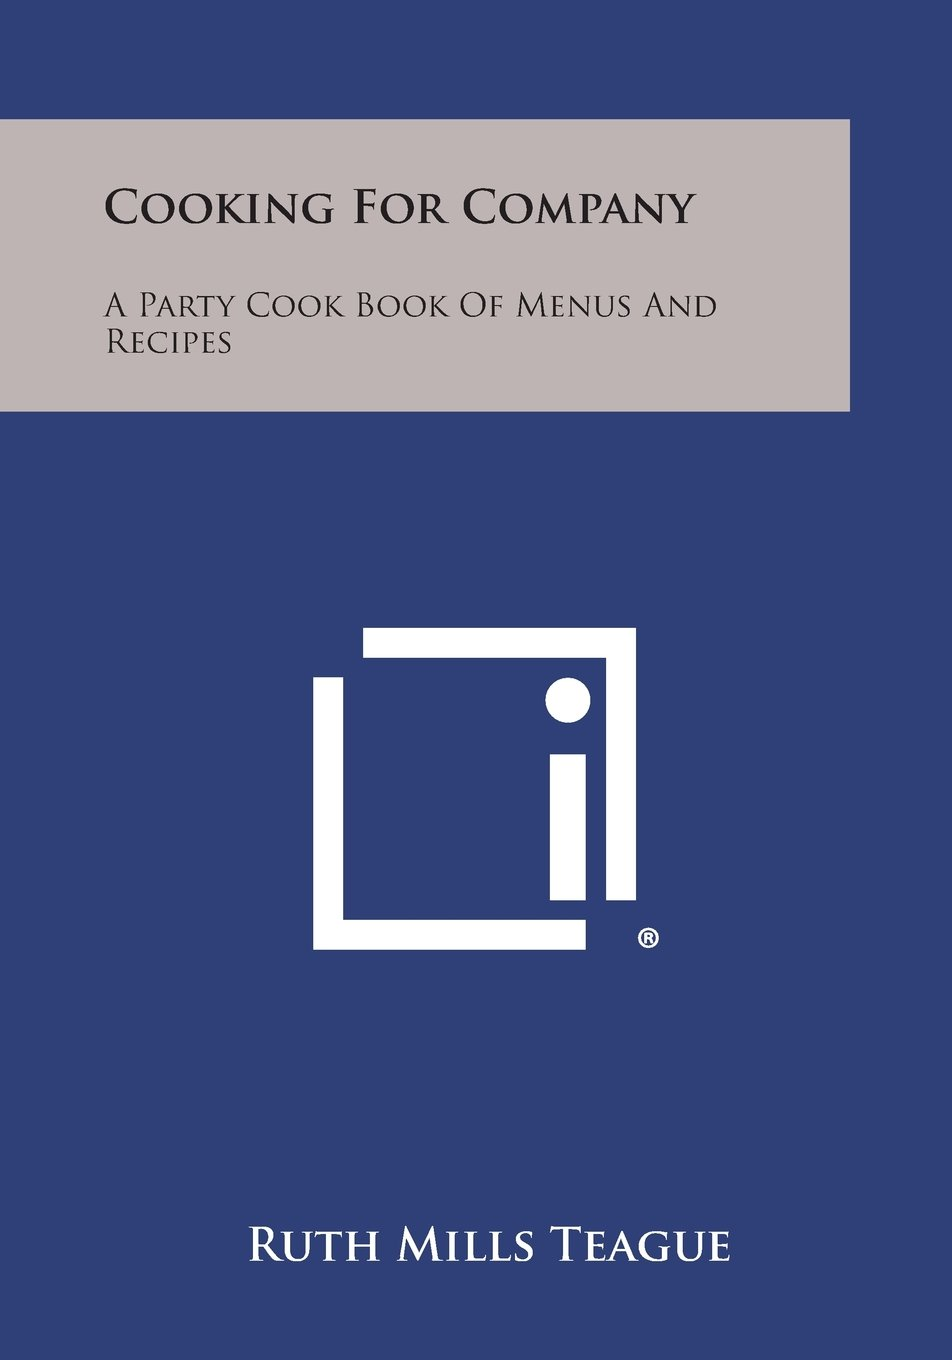 Cooking for Company: A Party Cook Book of Menus and Recipes pdf